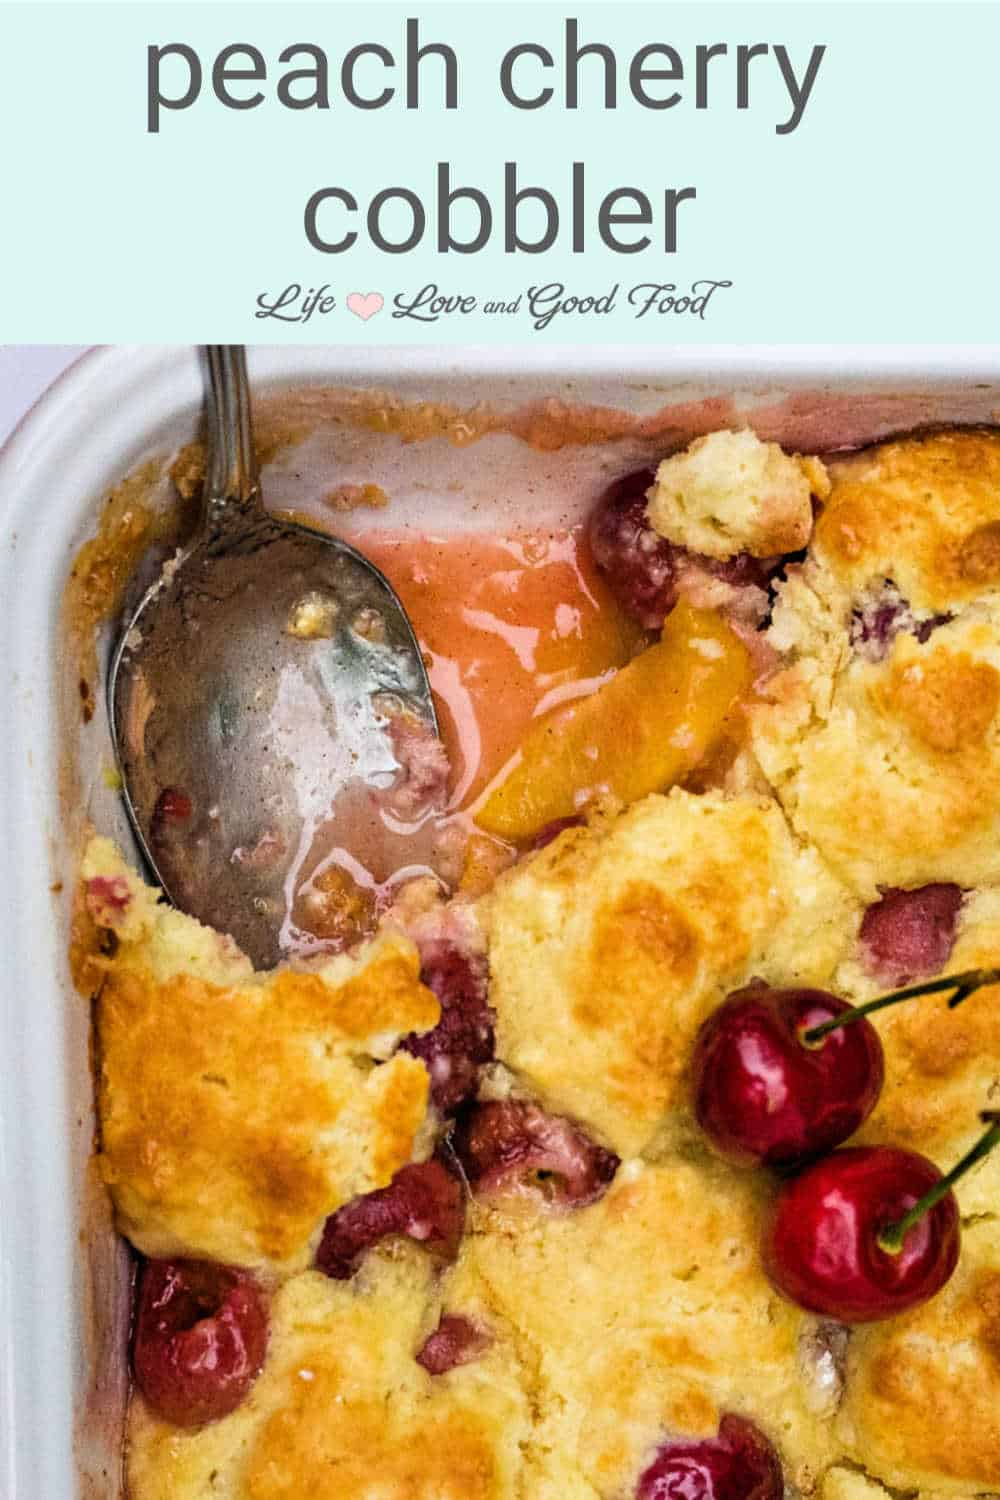 Made with fresh peaches and sweet Bing cherries, Peach Cherry Cobbler with Sweet Biscuit Topping is the perfect homemade Summer dessert. Best served warm with a scoop of vanilla ice cream, this easy made-from-scratch cobbler recipe is baked with a sweet drop biscuit topping on top of slices of fresh peaches and pitted cherries.